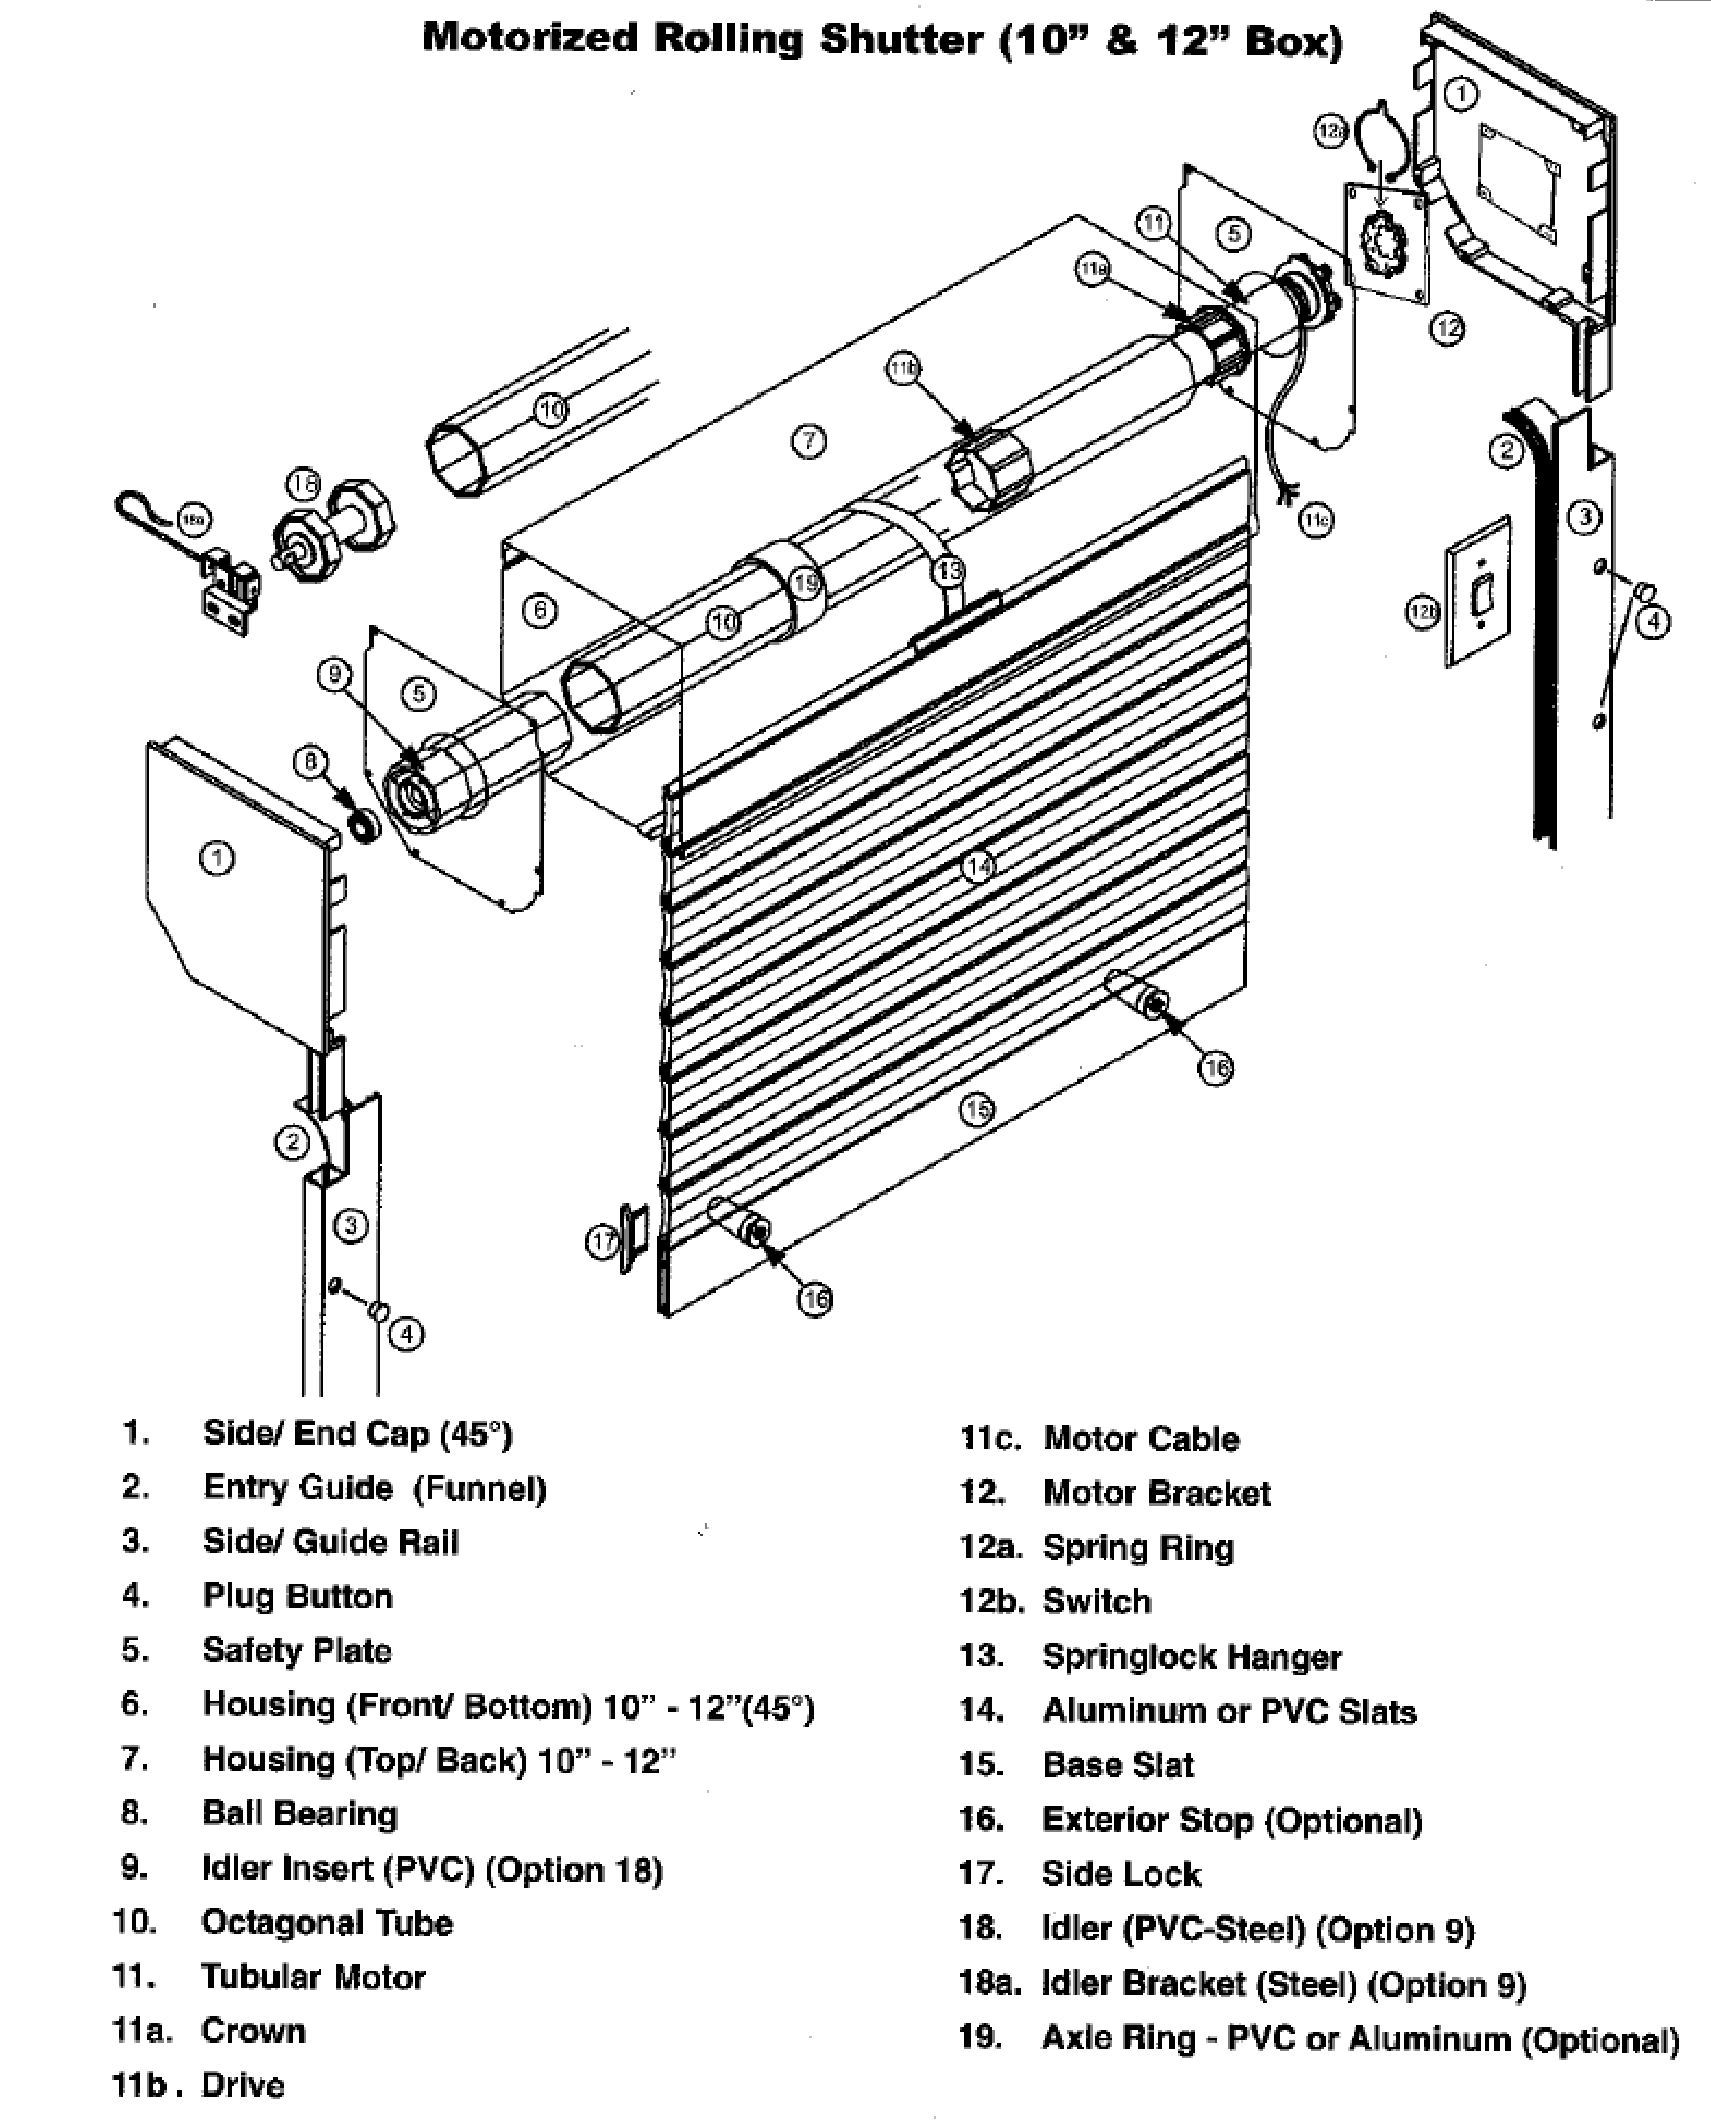 Exploded View And Parts Of Roll Up Shutter